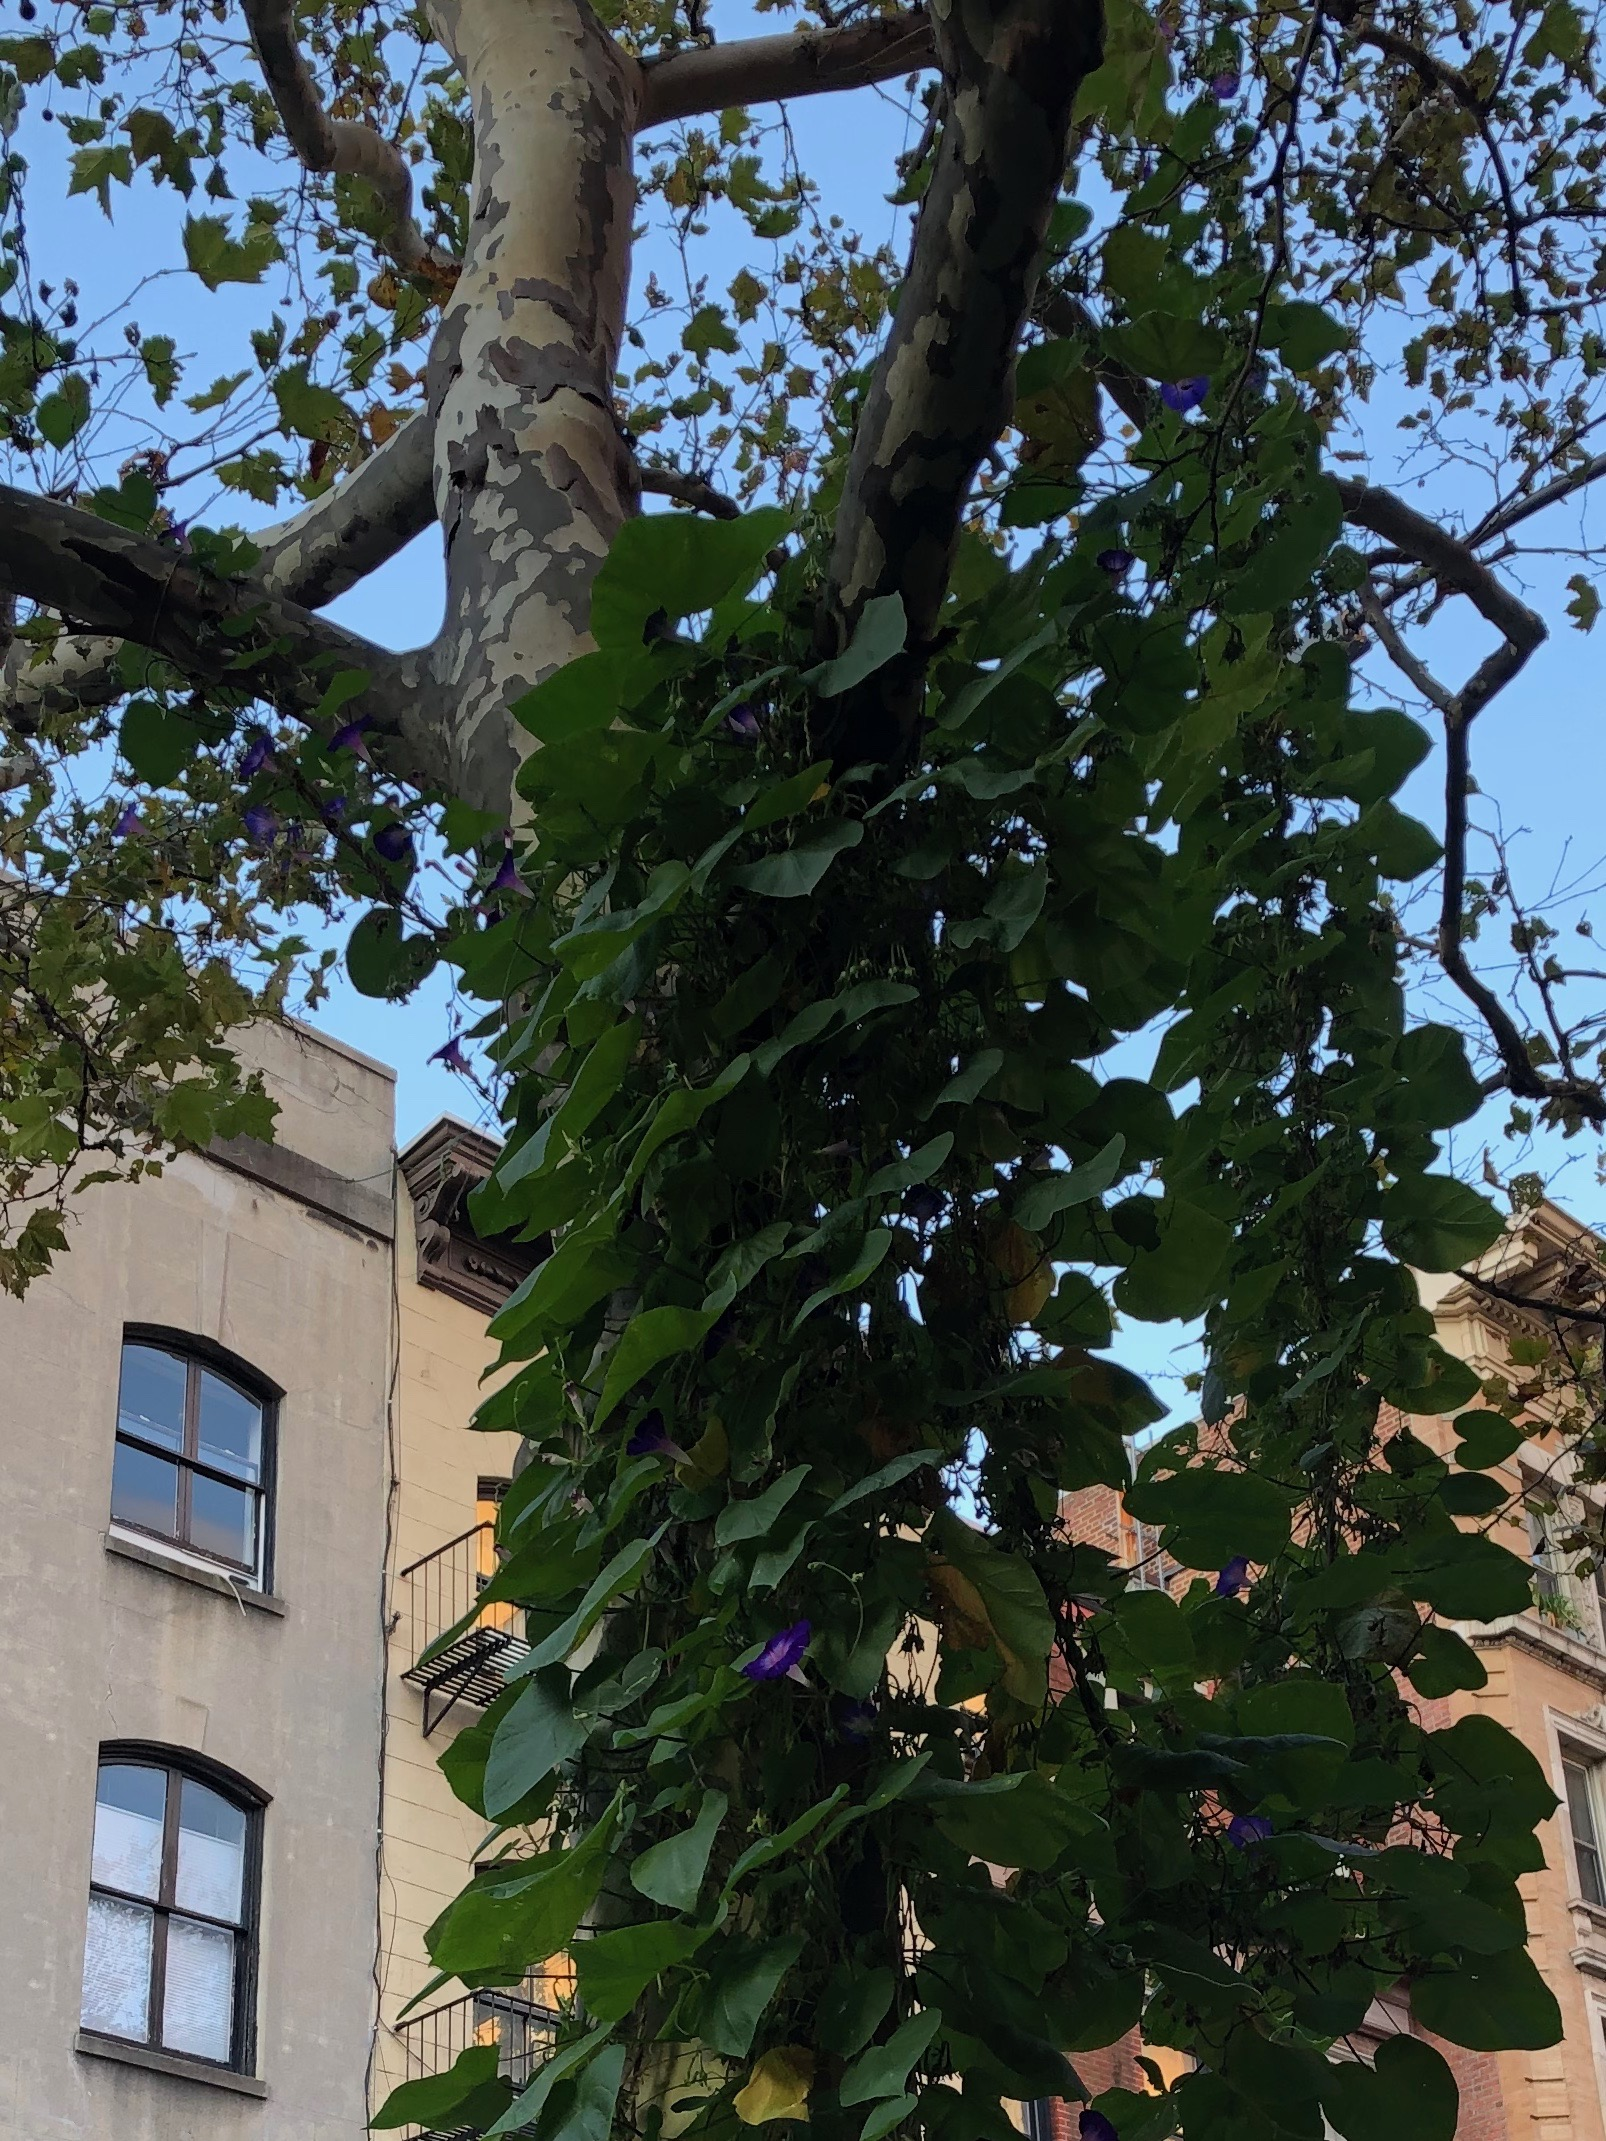 092619-vine-on-tree-NYC